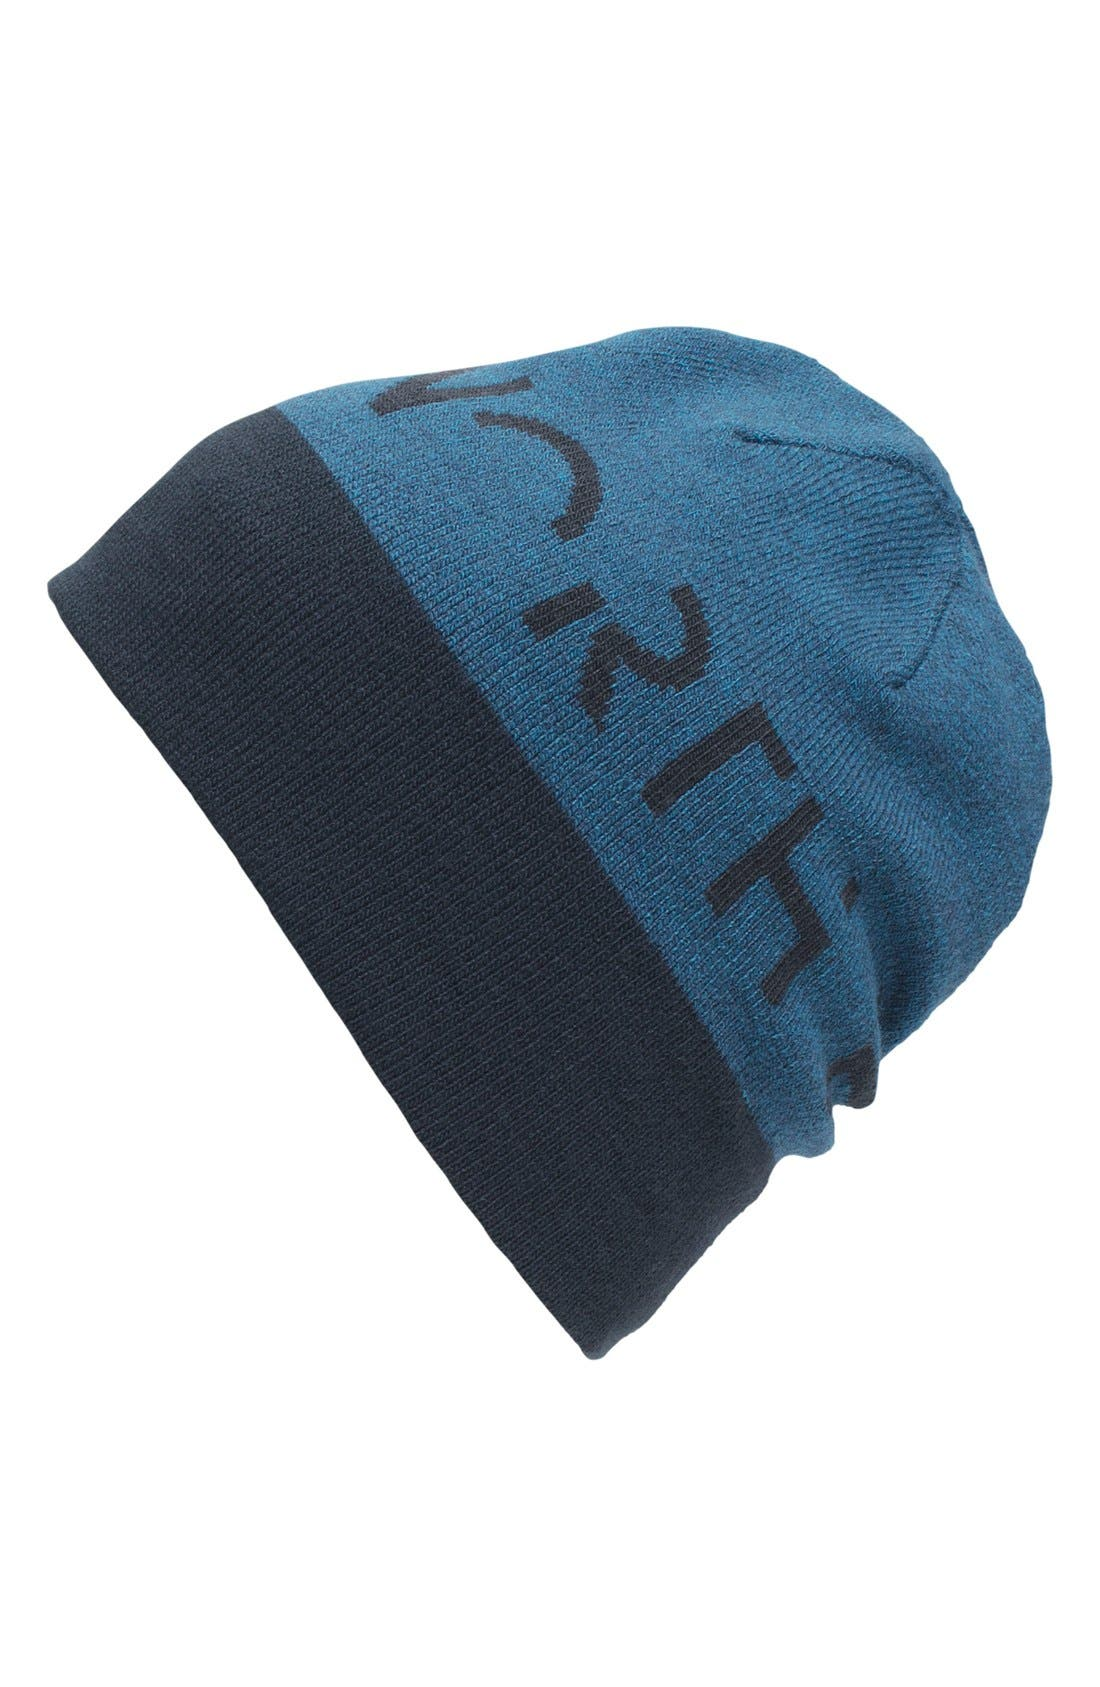 Alternate Image 1 Selected - The North Face Reversible Beanie